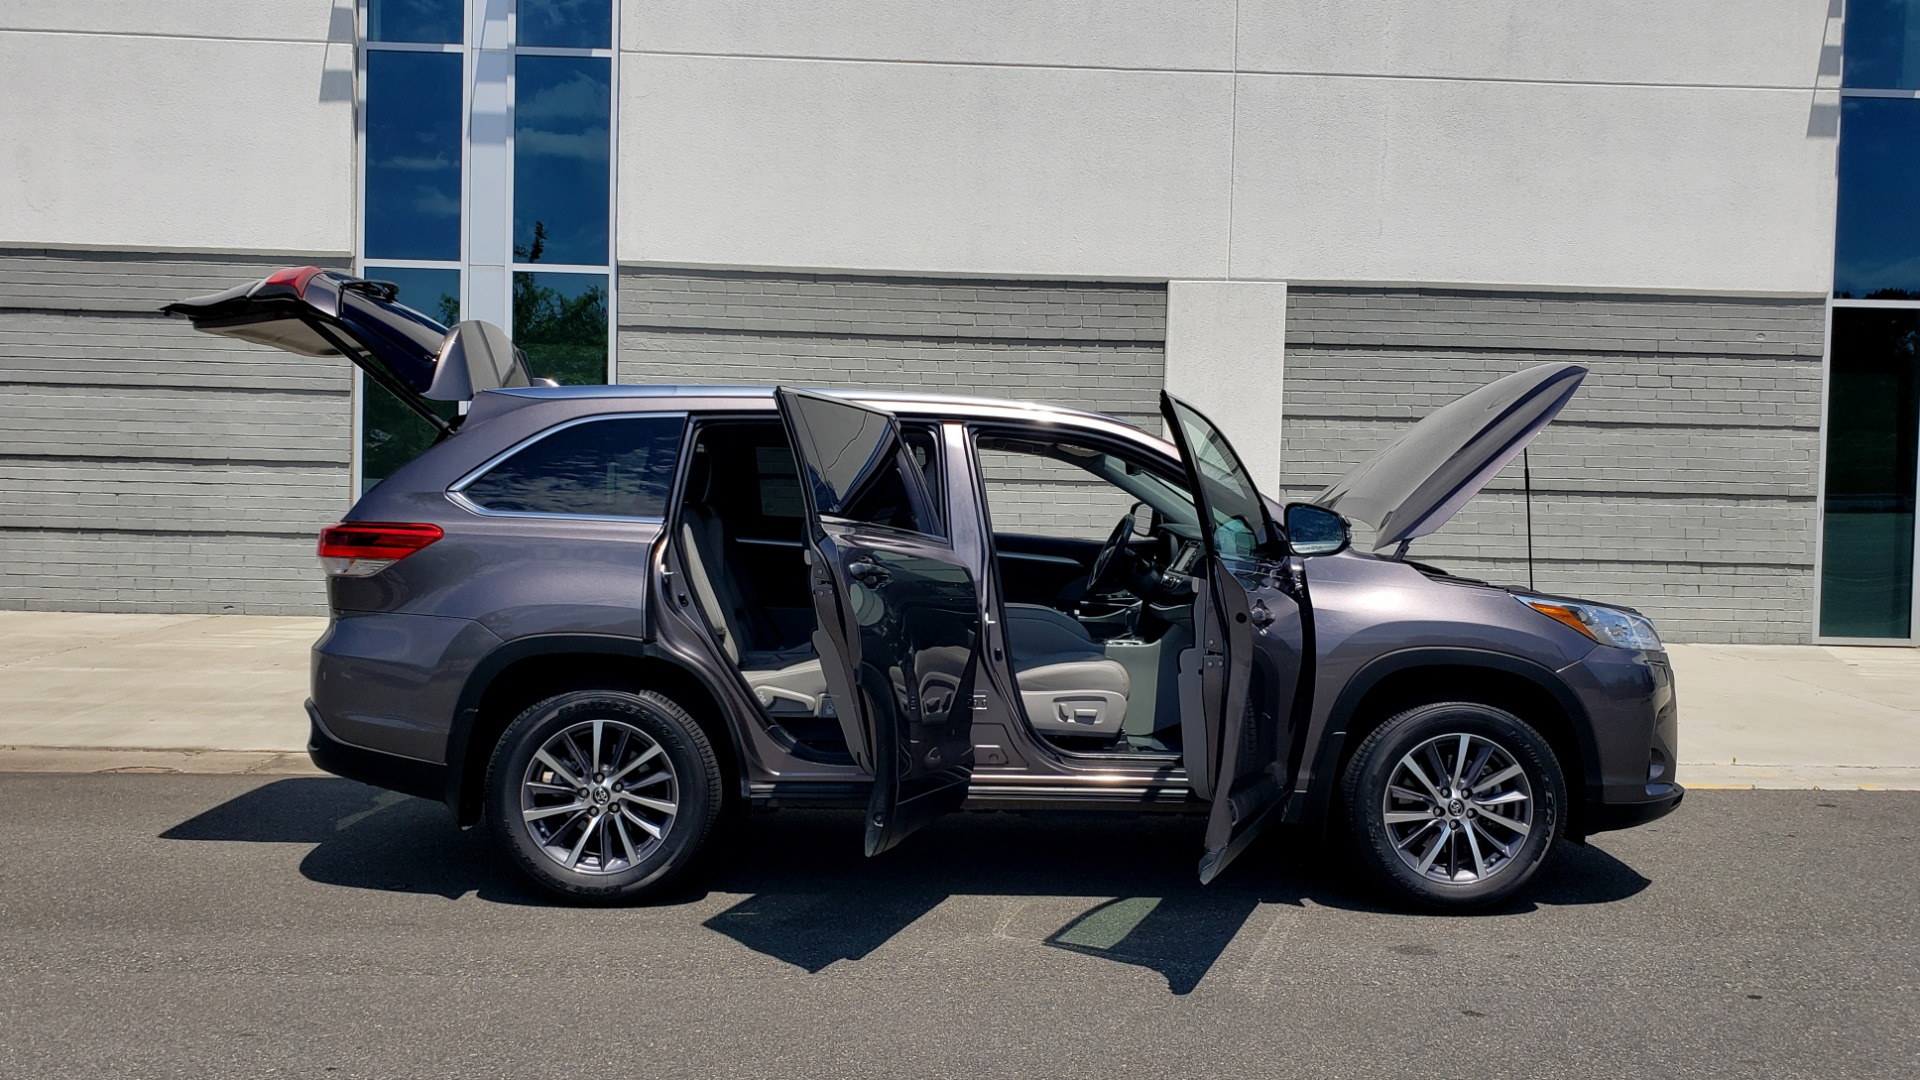 Used 2019 Toyota HIGHLANDER XLE / 3.5L V6 / AWD / LEATHER / 8-SPD AUTO / 1-OWNER for sale $37,500 at Formula Imports in Charlotte NC 28227 12